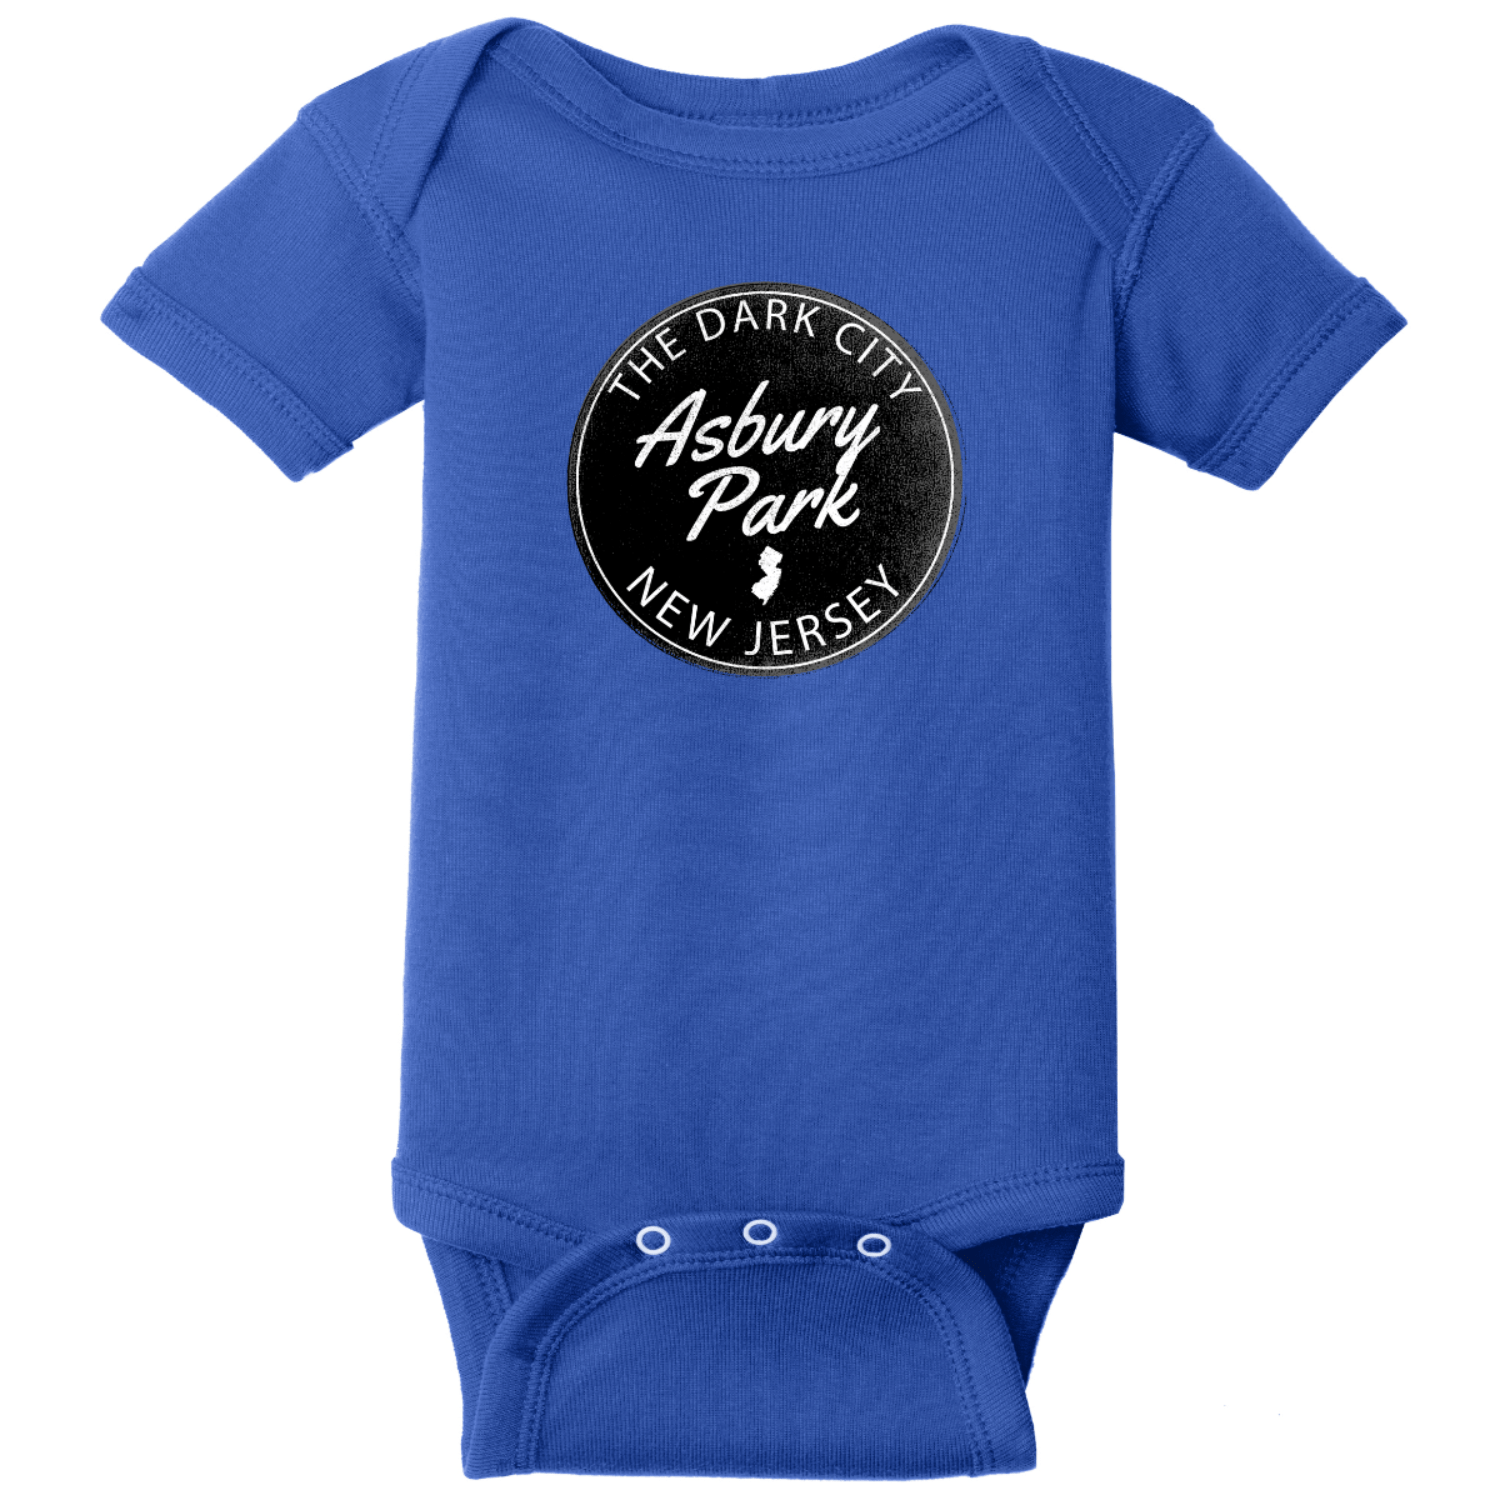 Asbury Park NJ Dark City Baby Bodysuit Royal Rabbit Skins Infant Short Sleeve Infant Rib Bodysuit RS4400